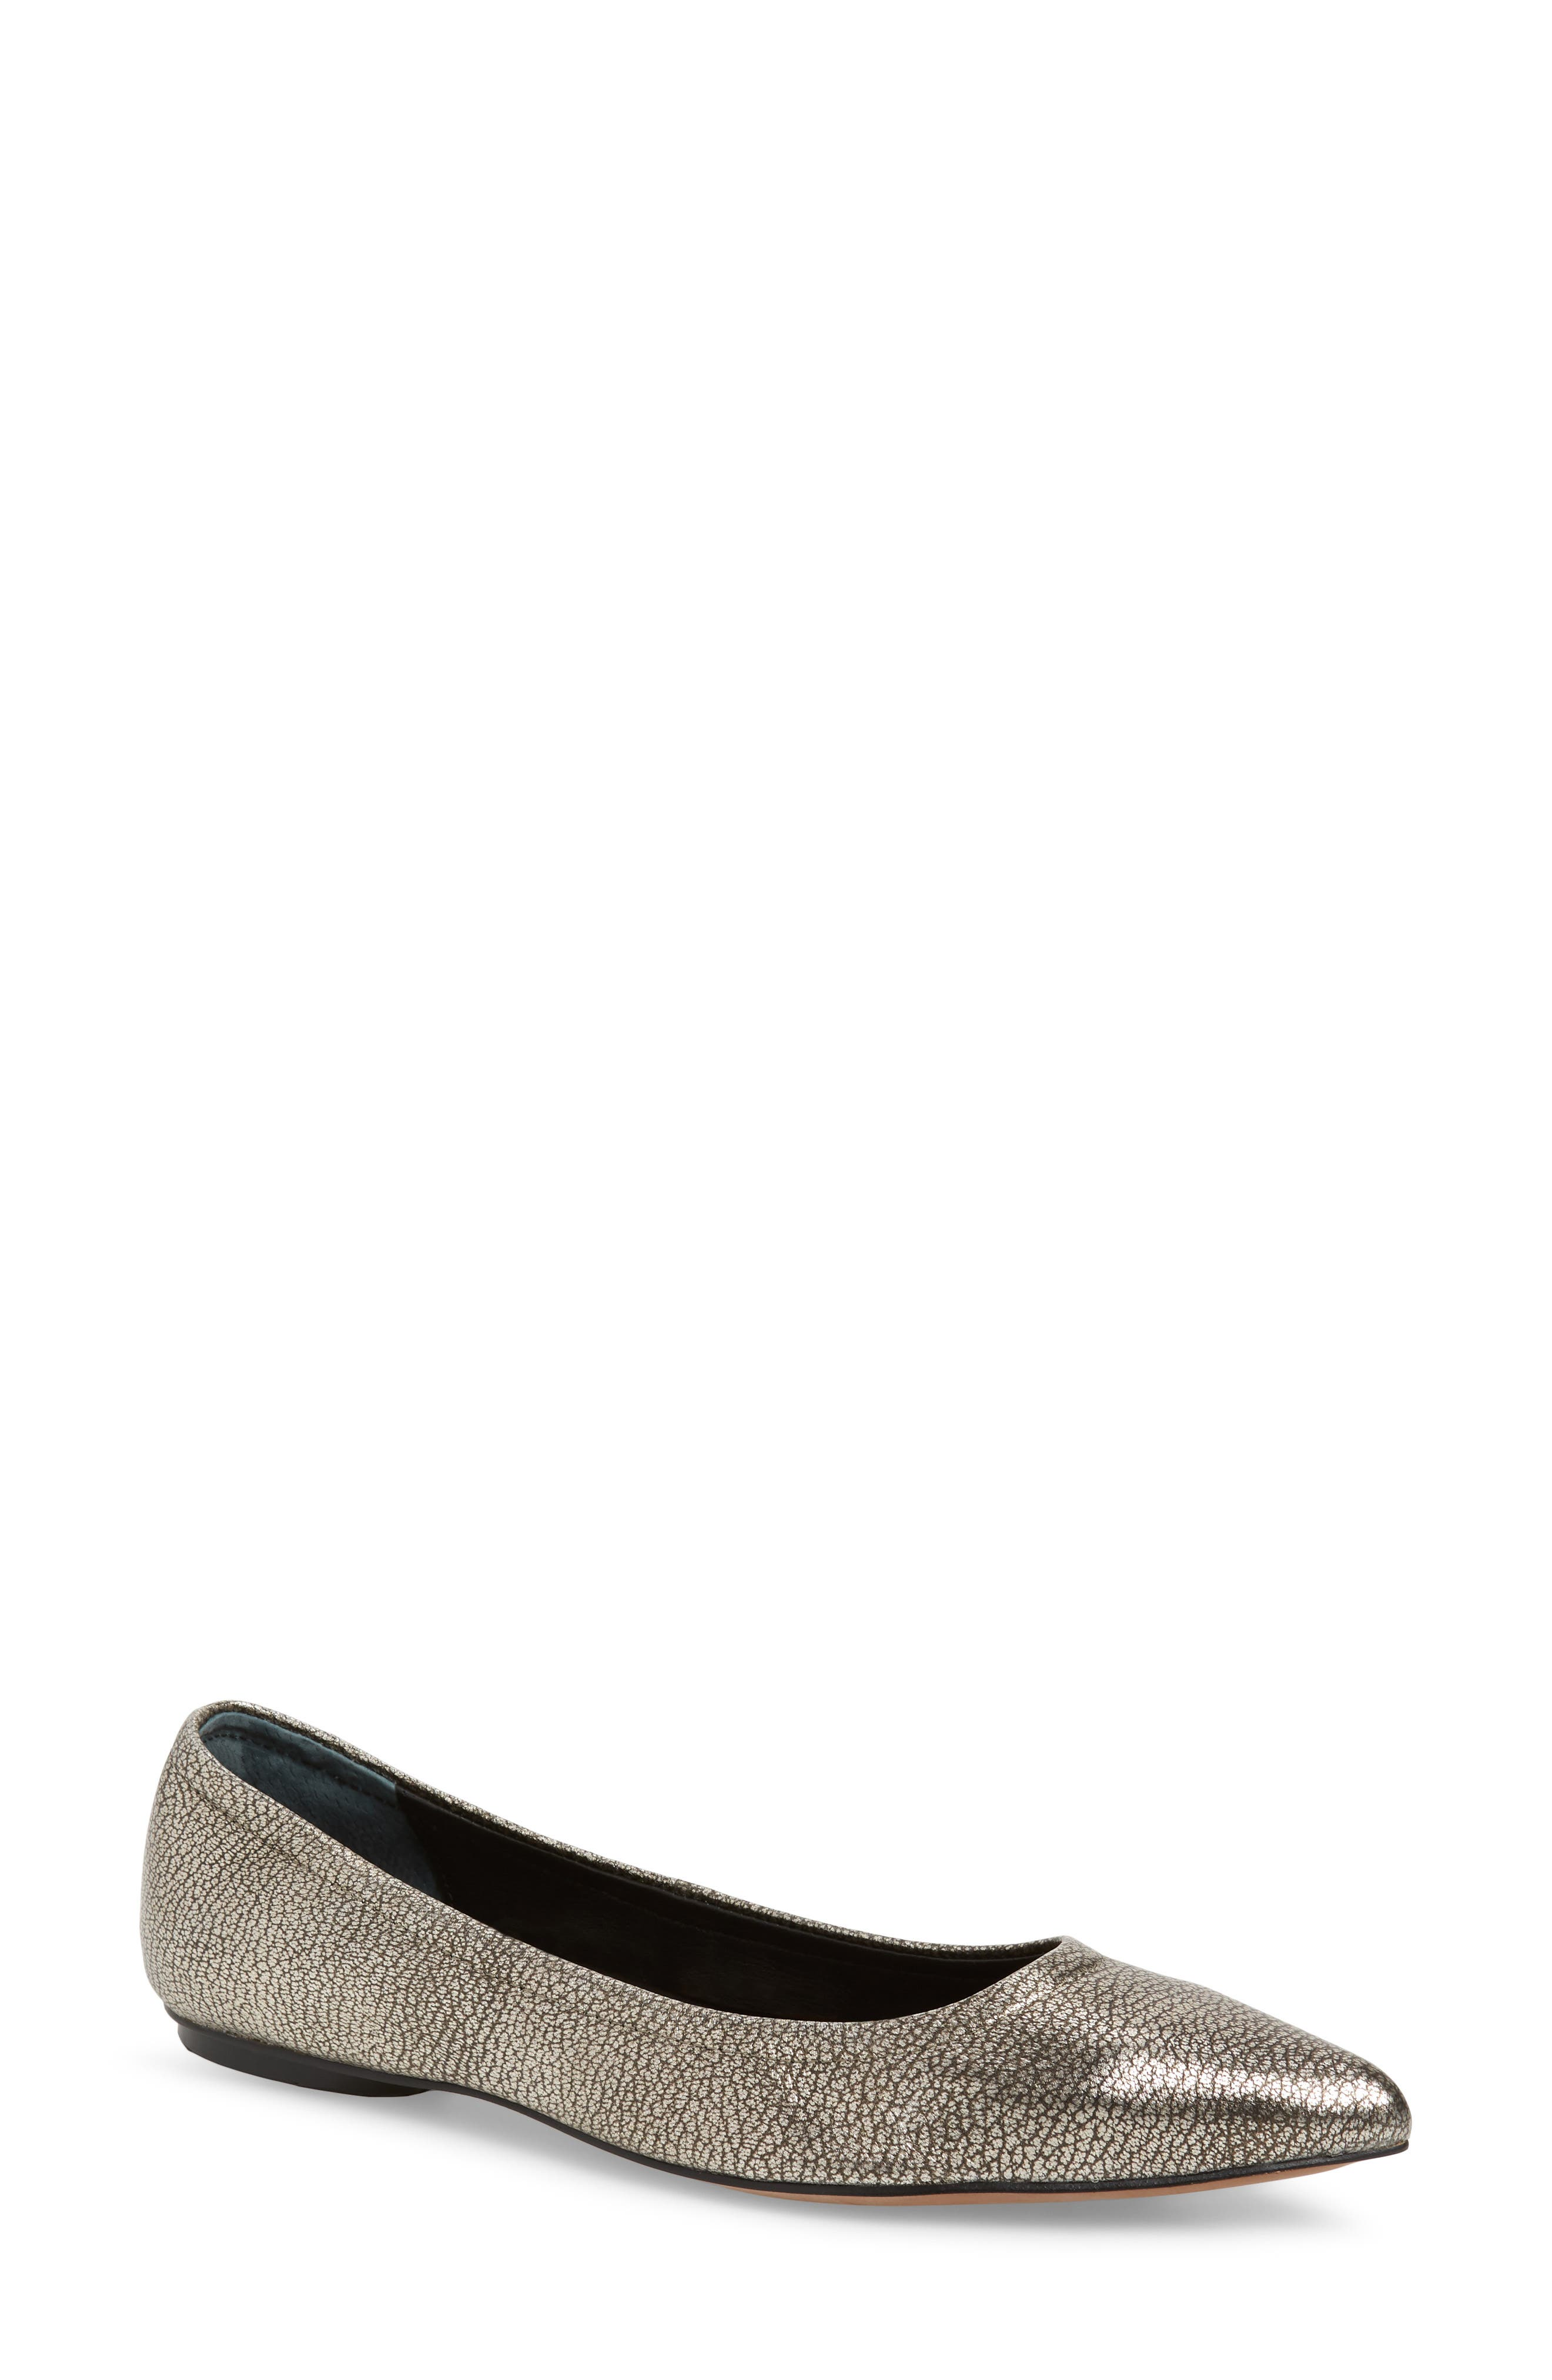 Nico Pointy Toe Flat,                         Main,                         color, ANTHRACITE LEATHER